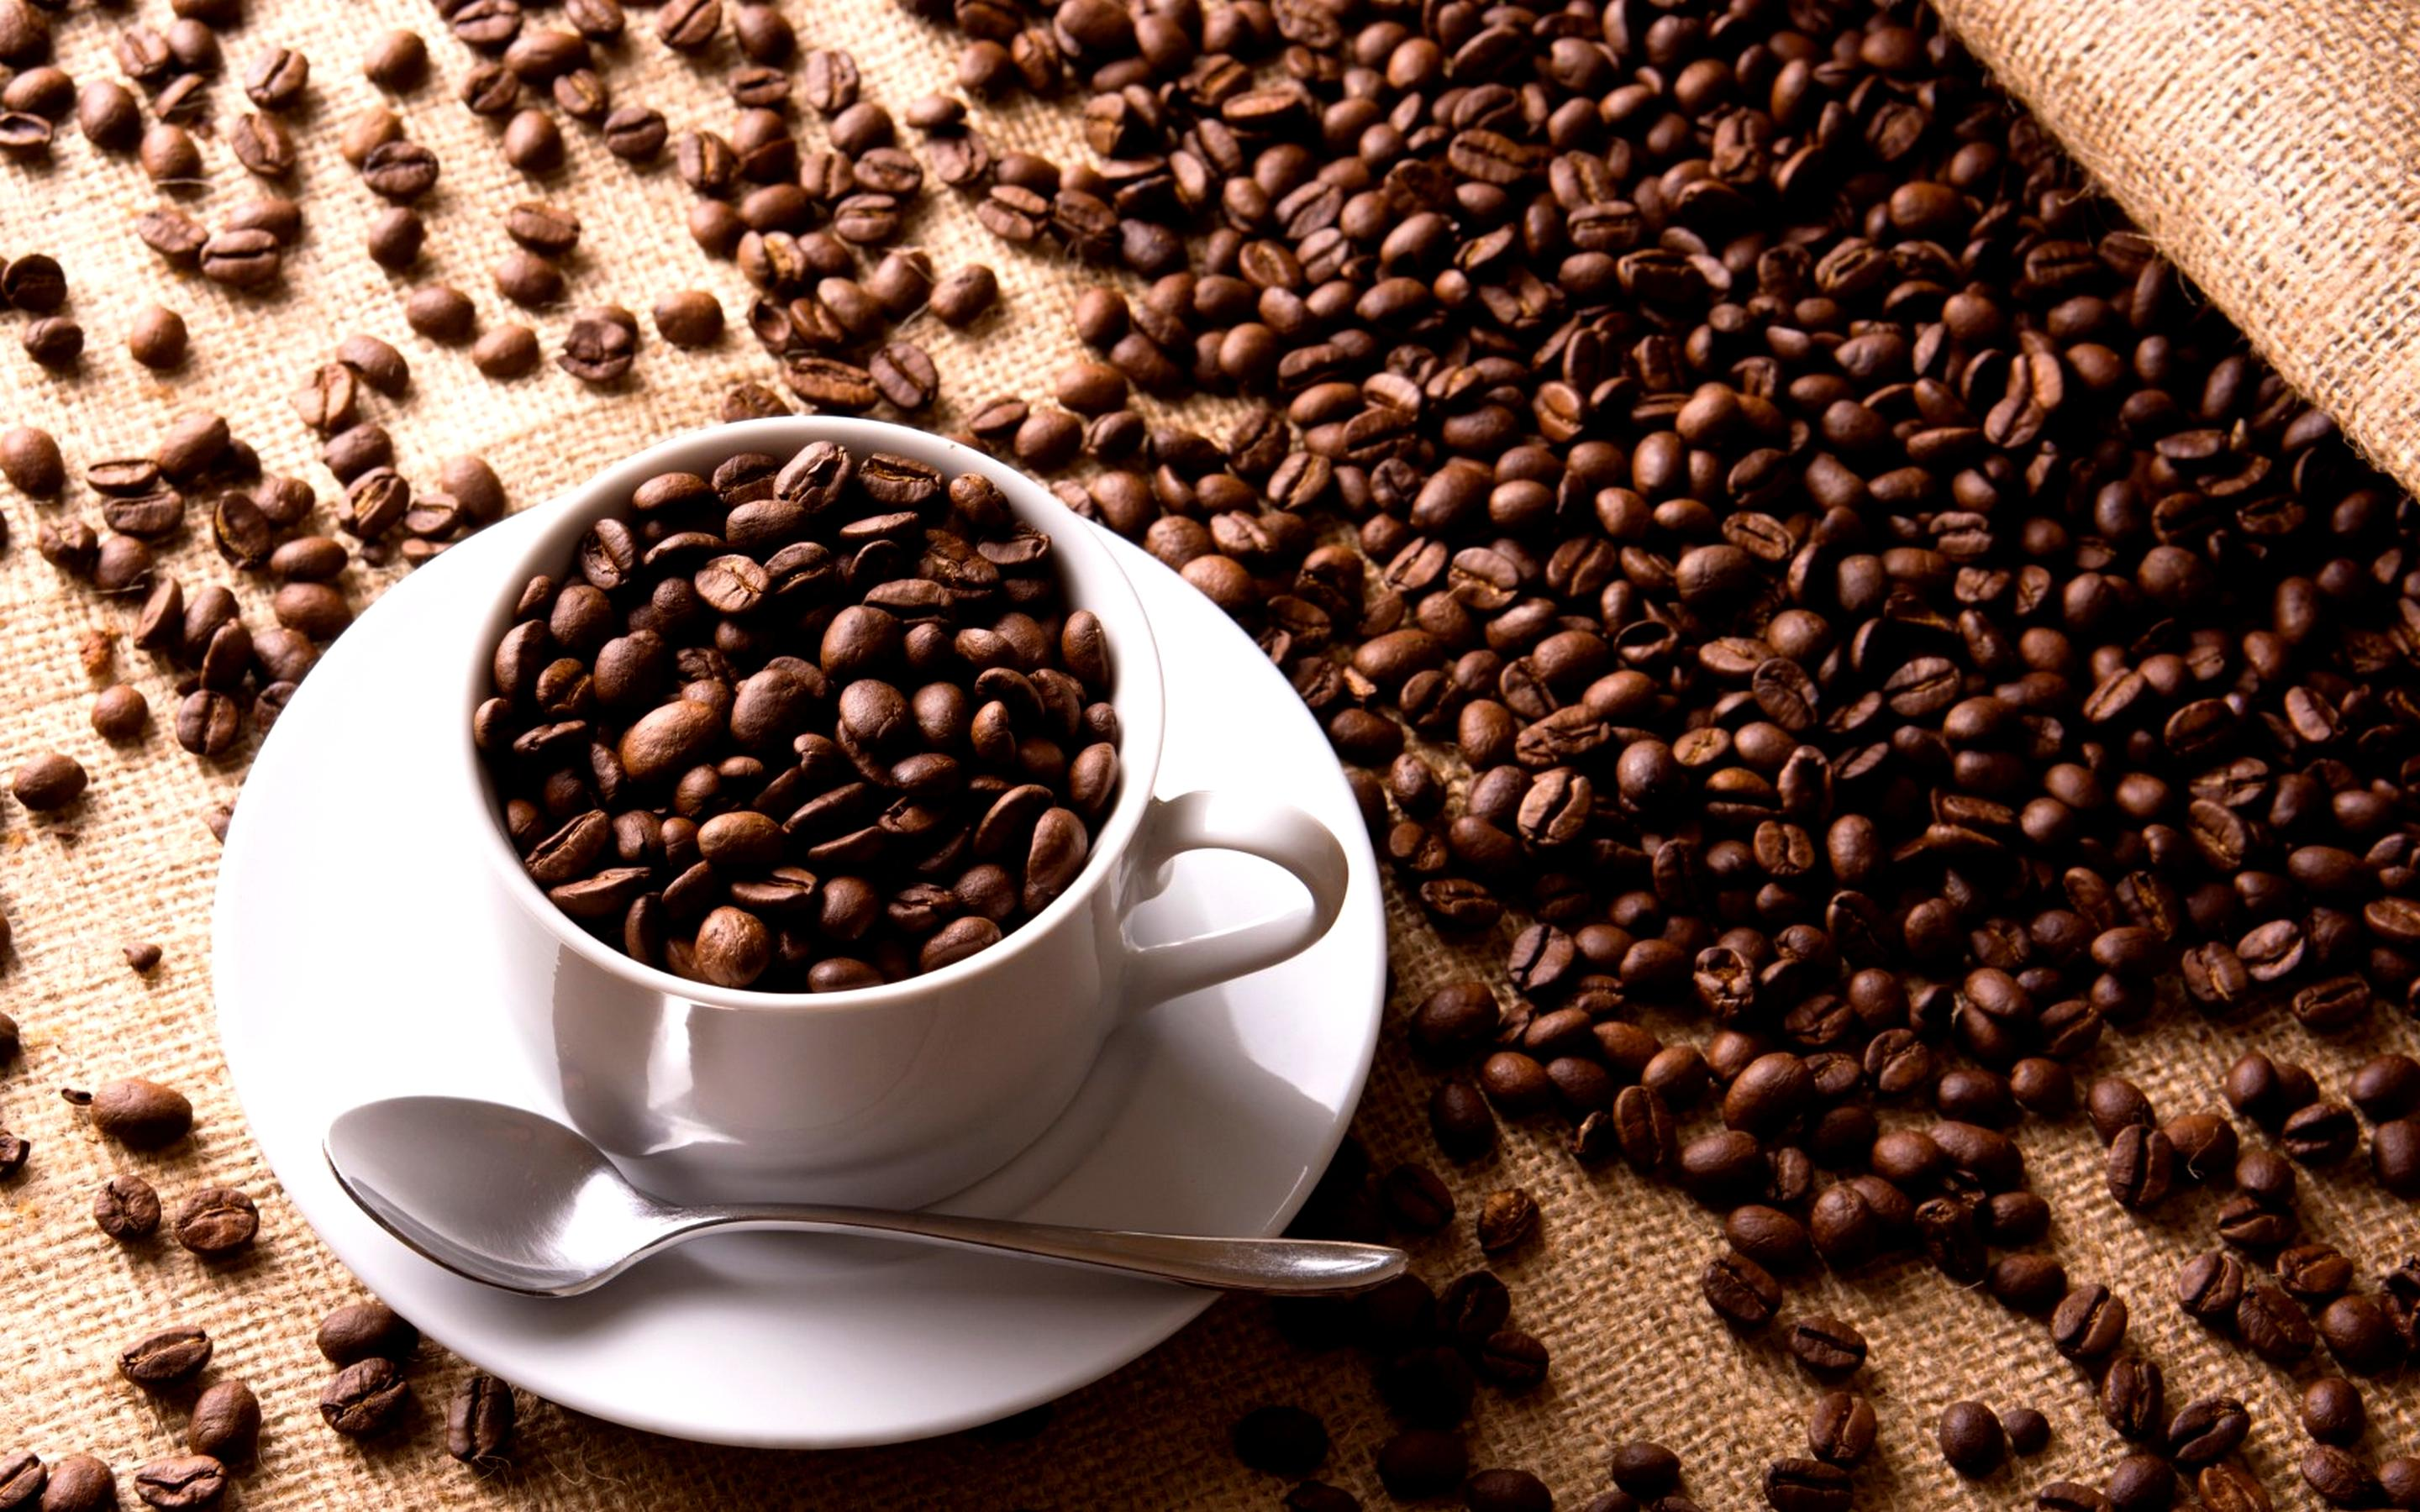 Coffee-Beans-HD-Wallpaper.jpg